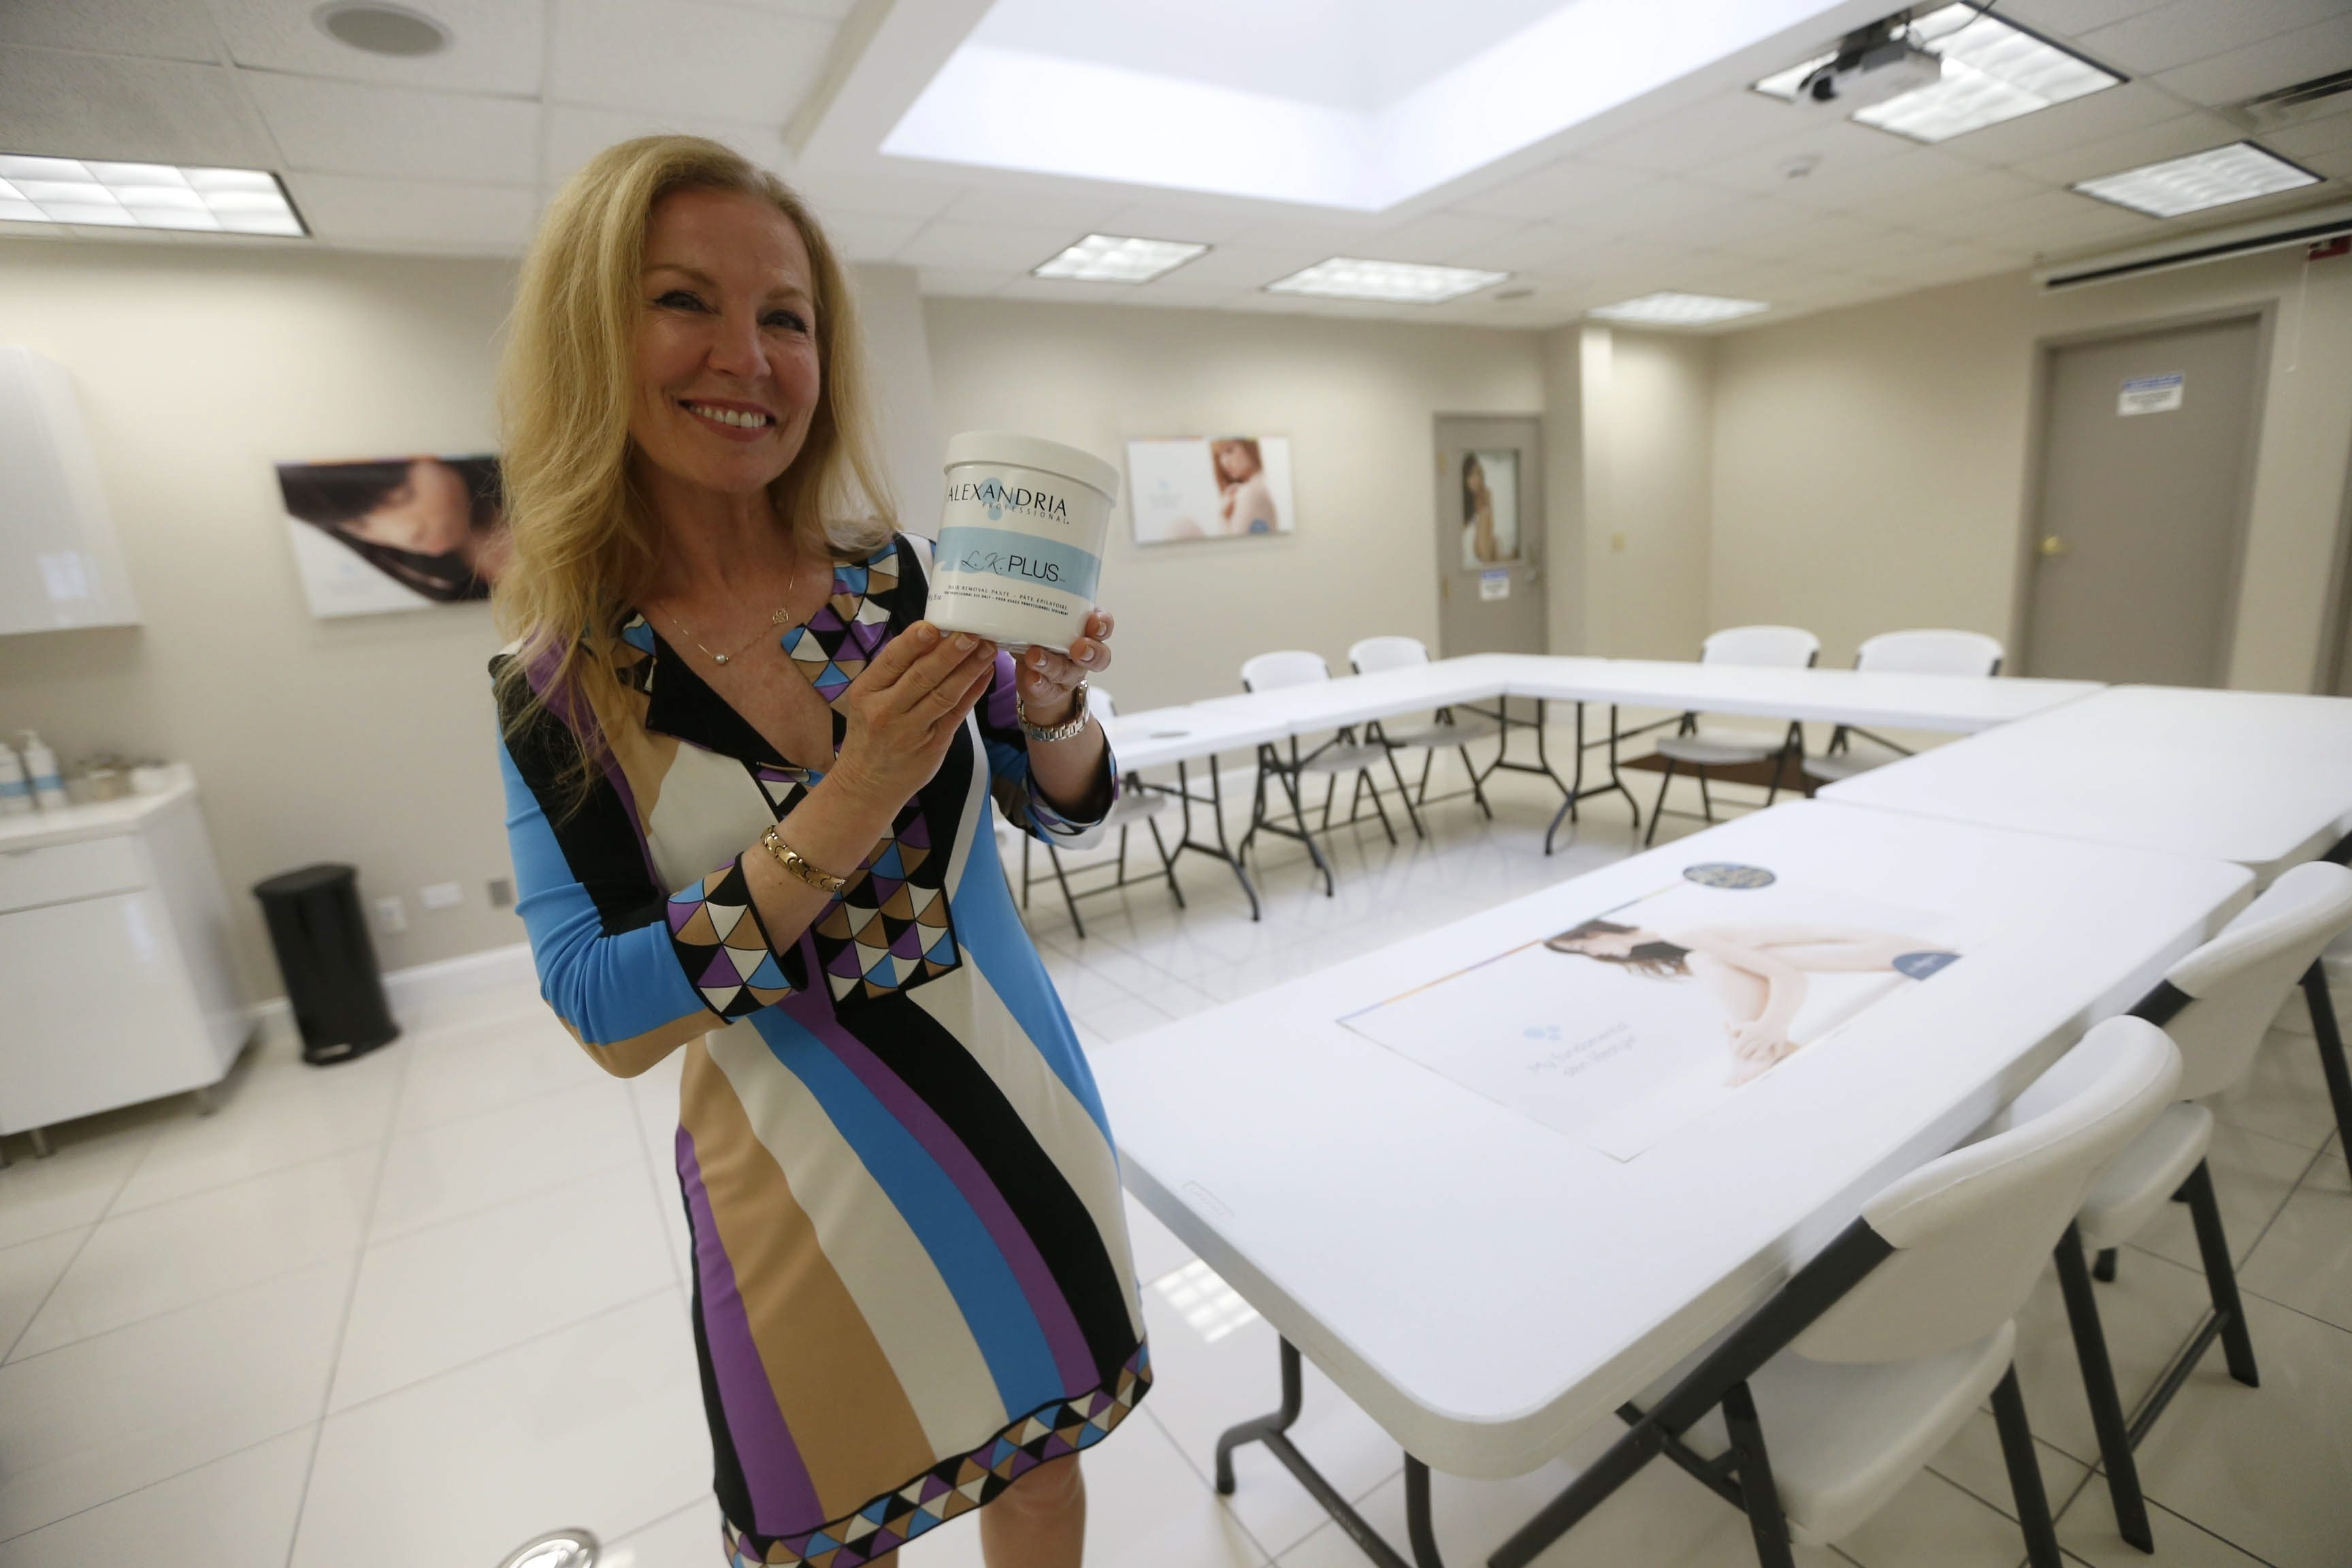 Lina Kennedy, president and CEO of Alexandria Professional, holds a tub of her sugar hair-removal formula at her Amherst facility. Though originally based out of Canada, Kennedy moved the business across the border to the Buffalo area.